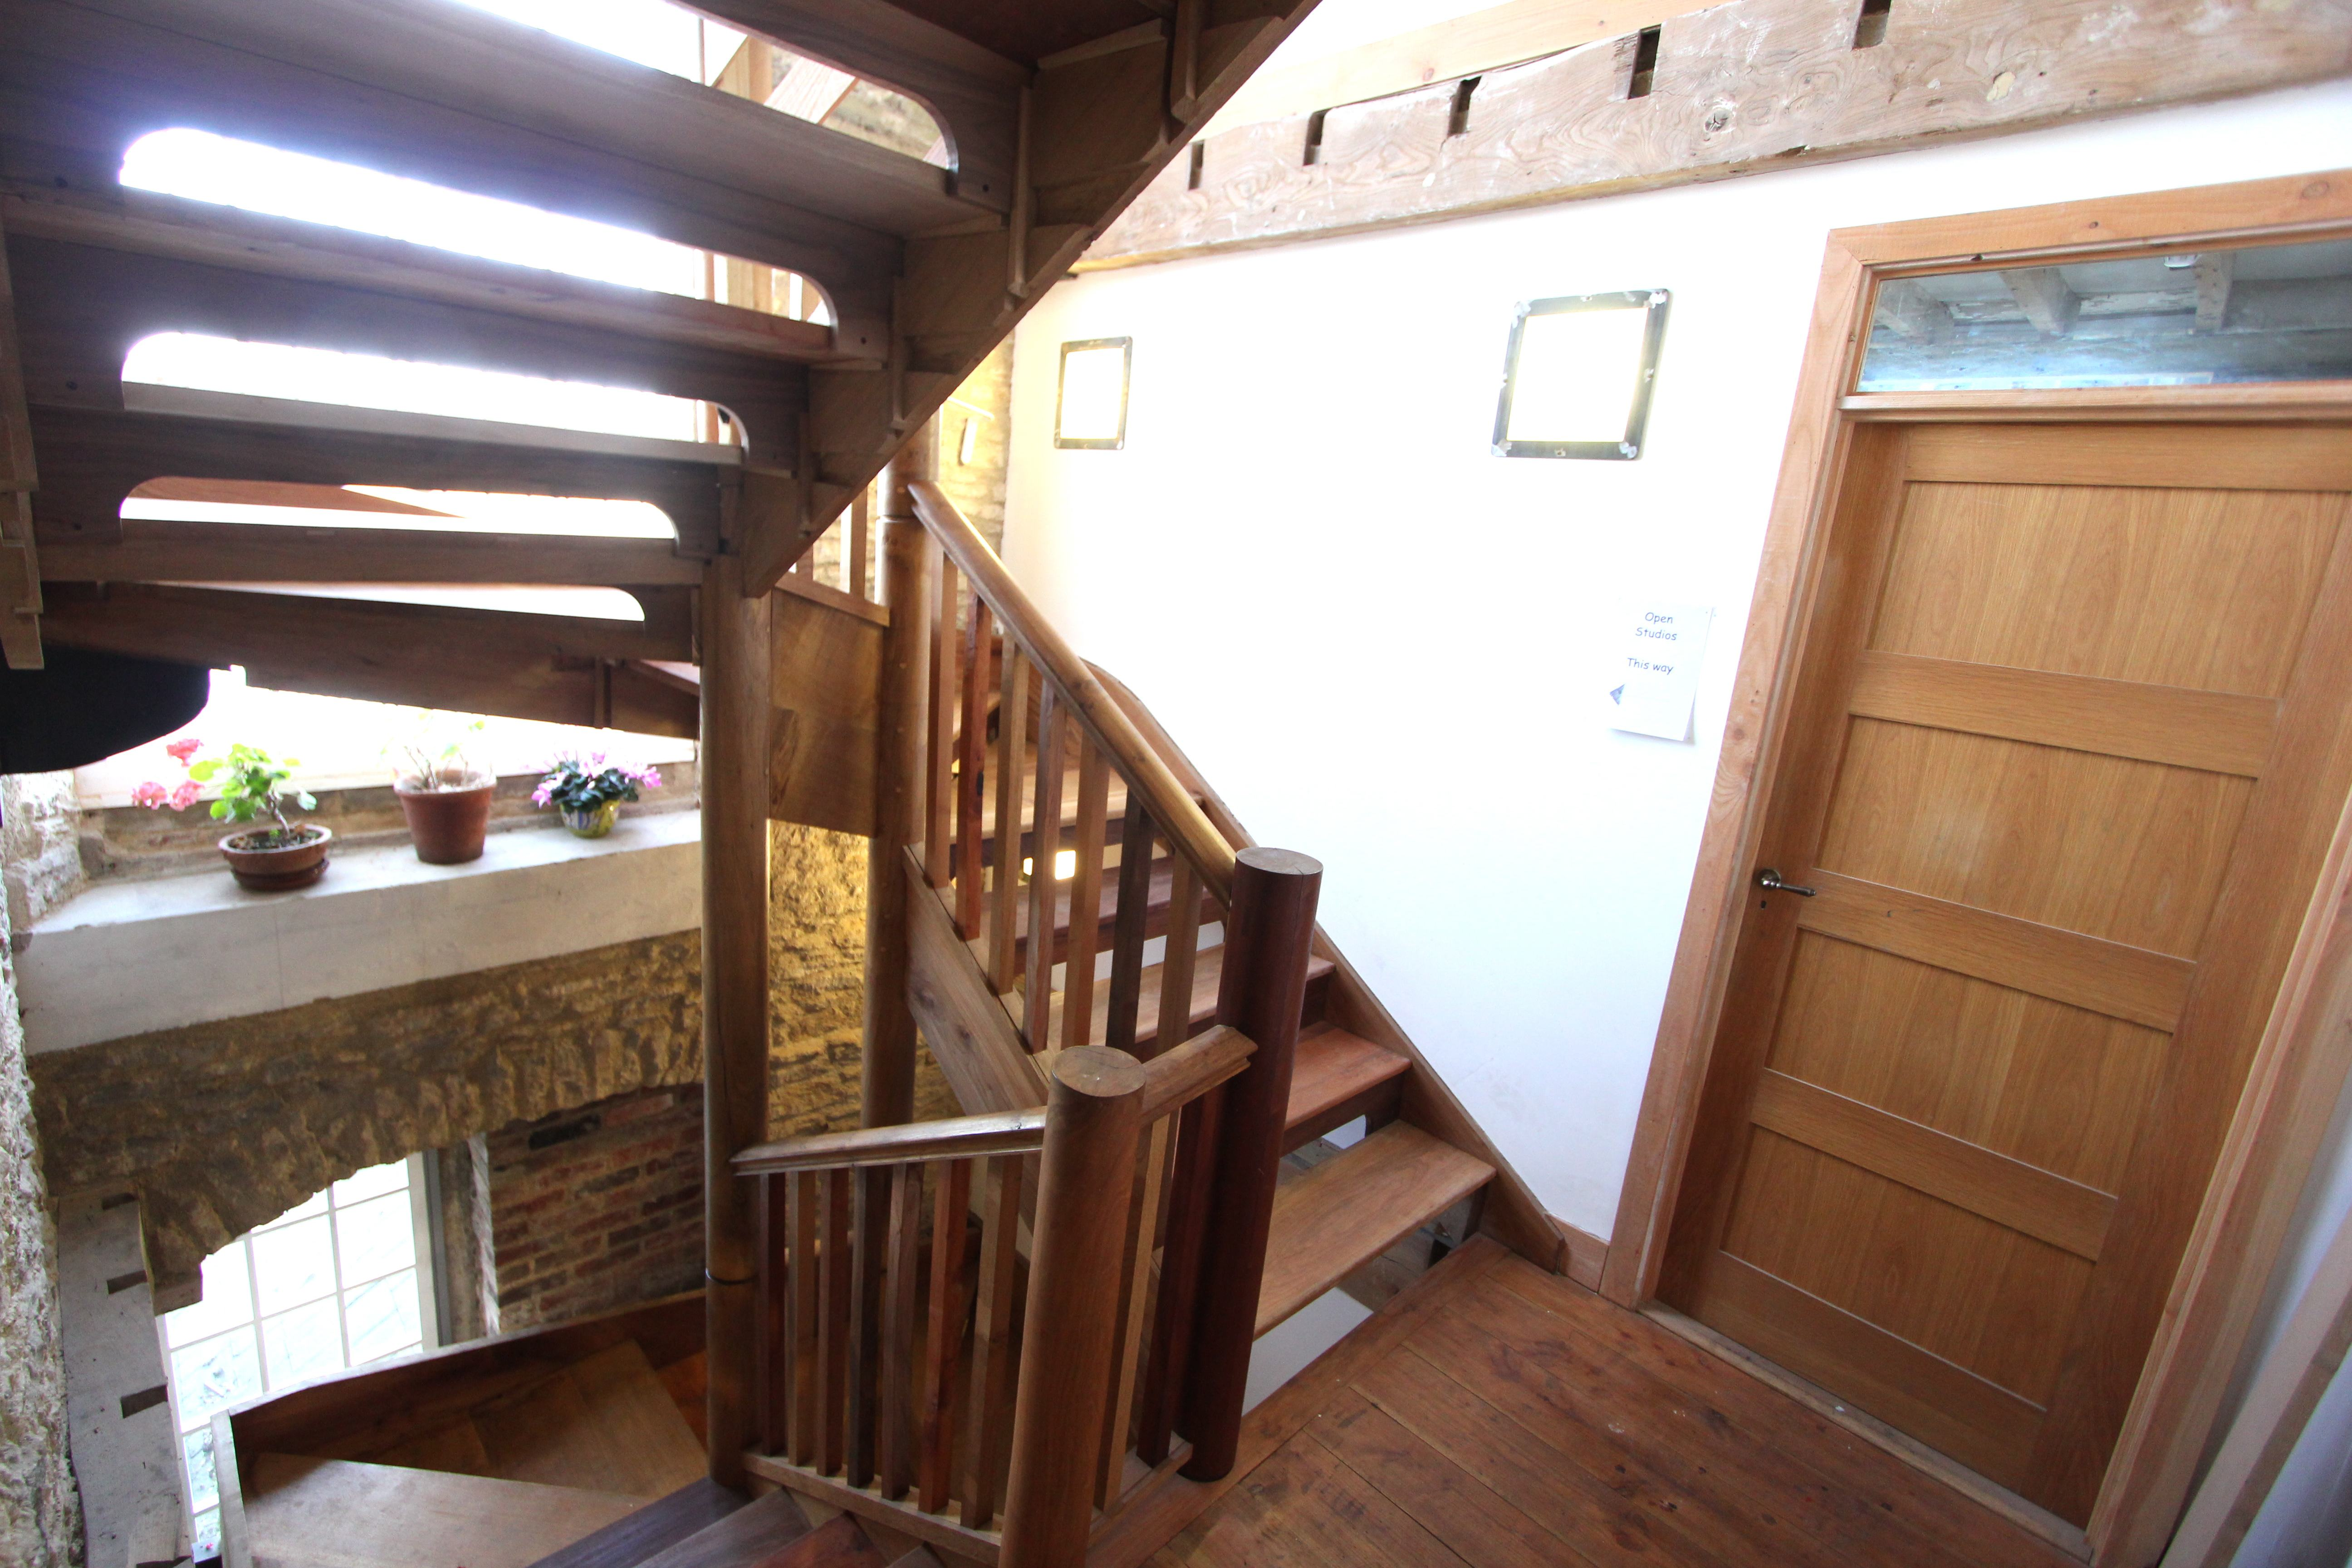 The staircase on the Second floor